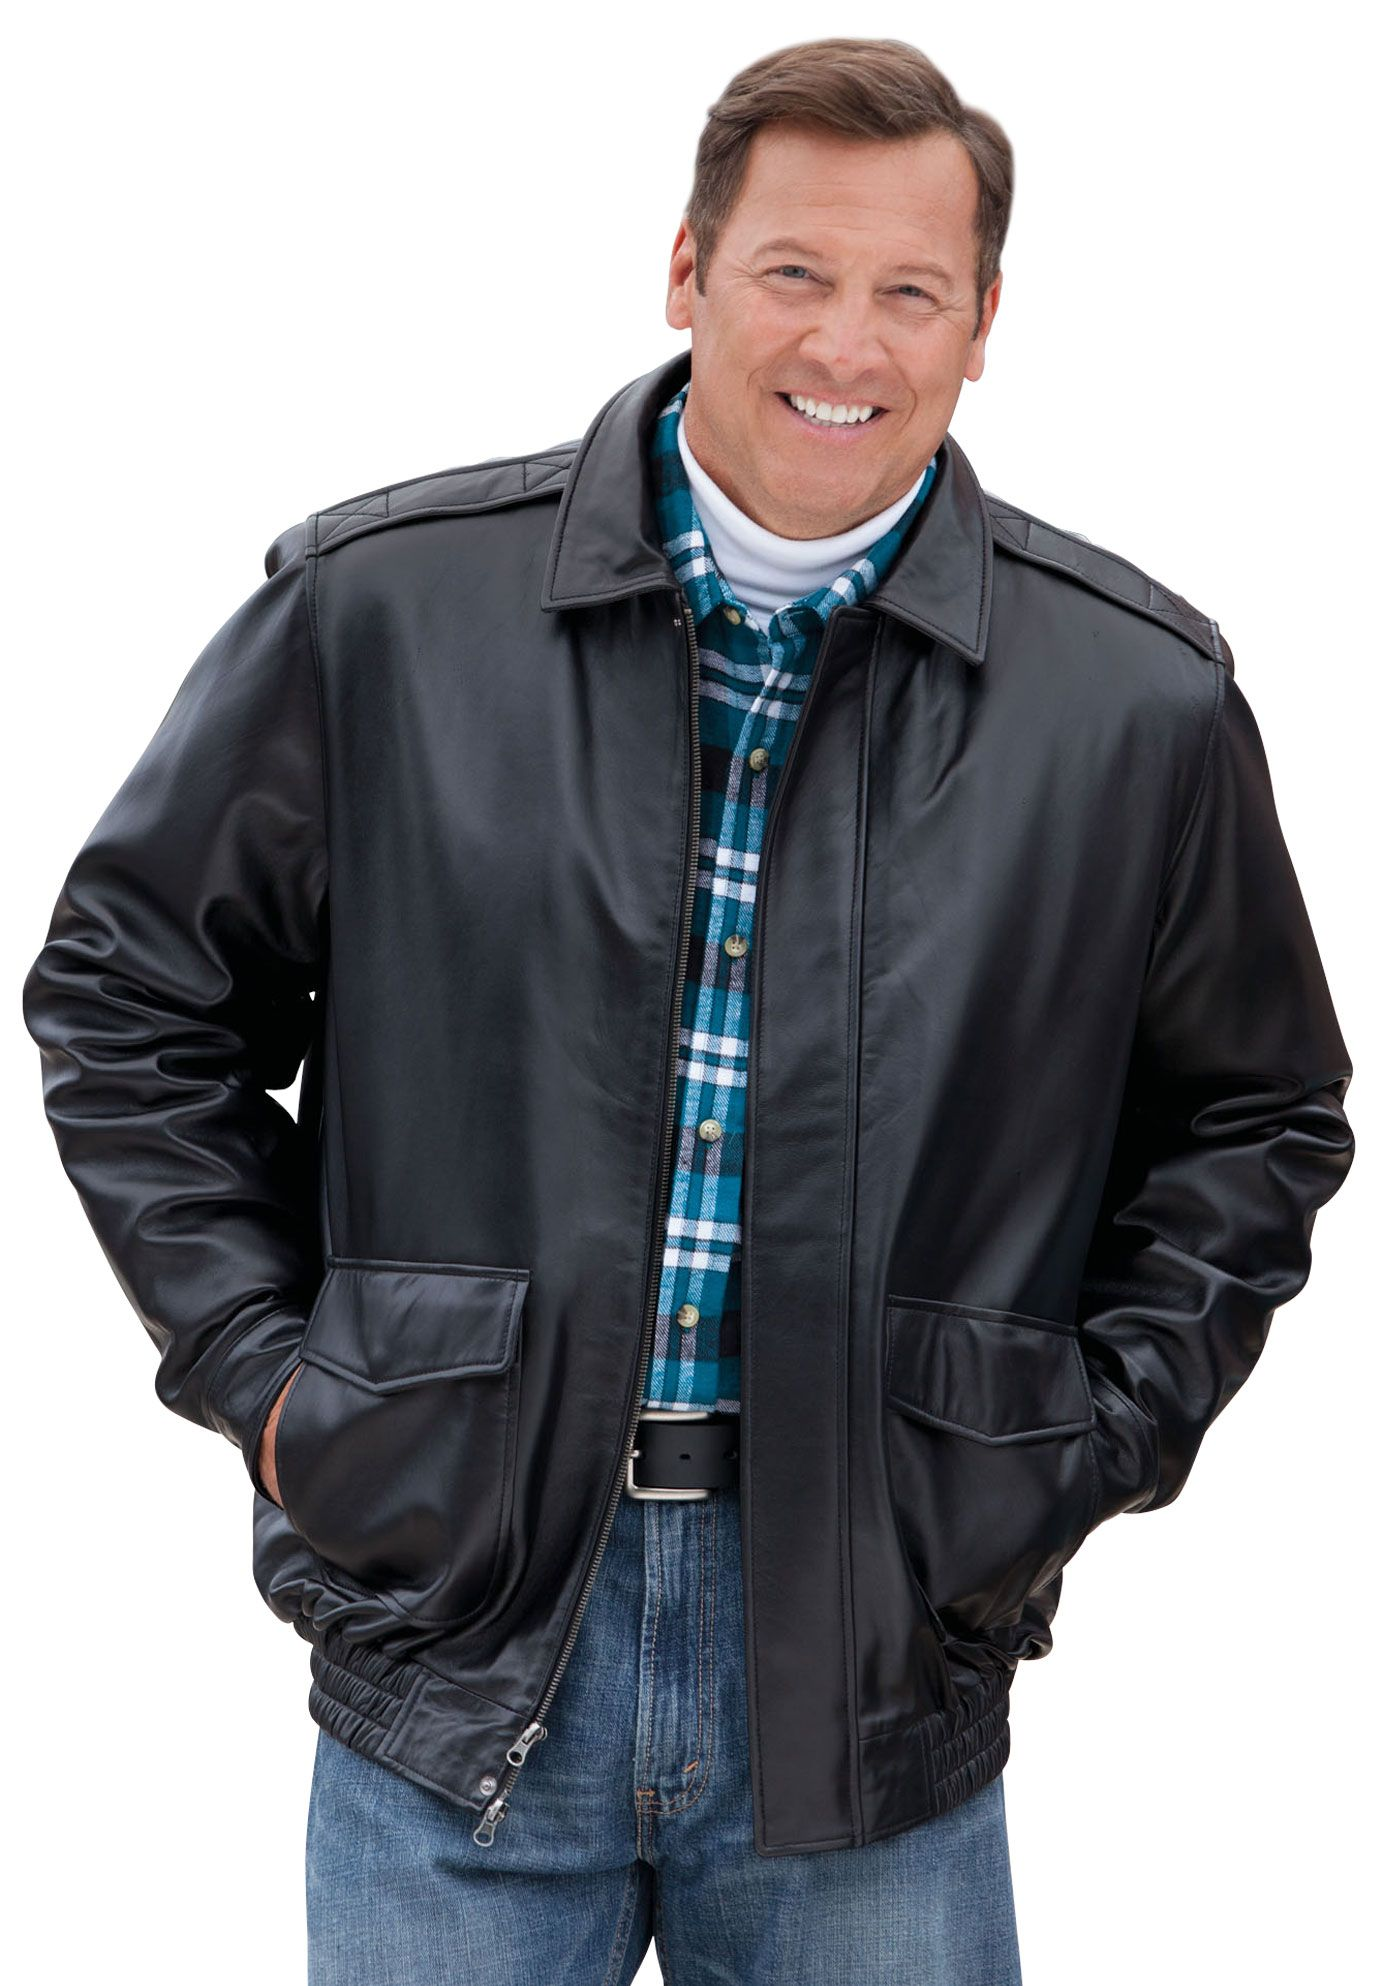 Big and Tall Leather Hipster Bomber Jacket image Hipster